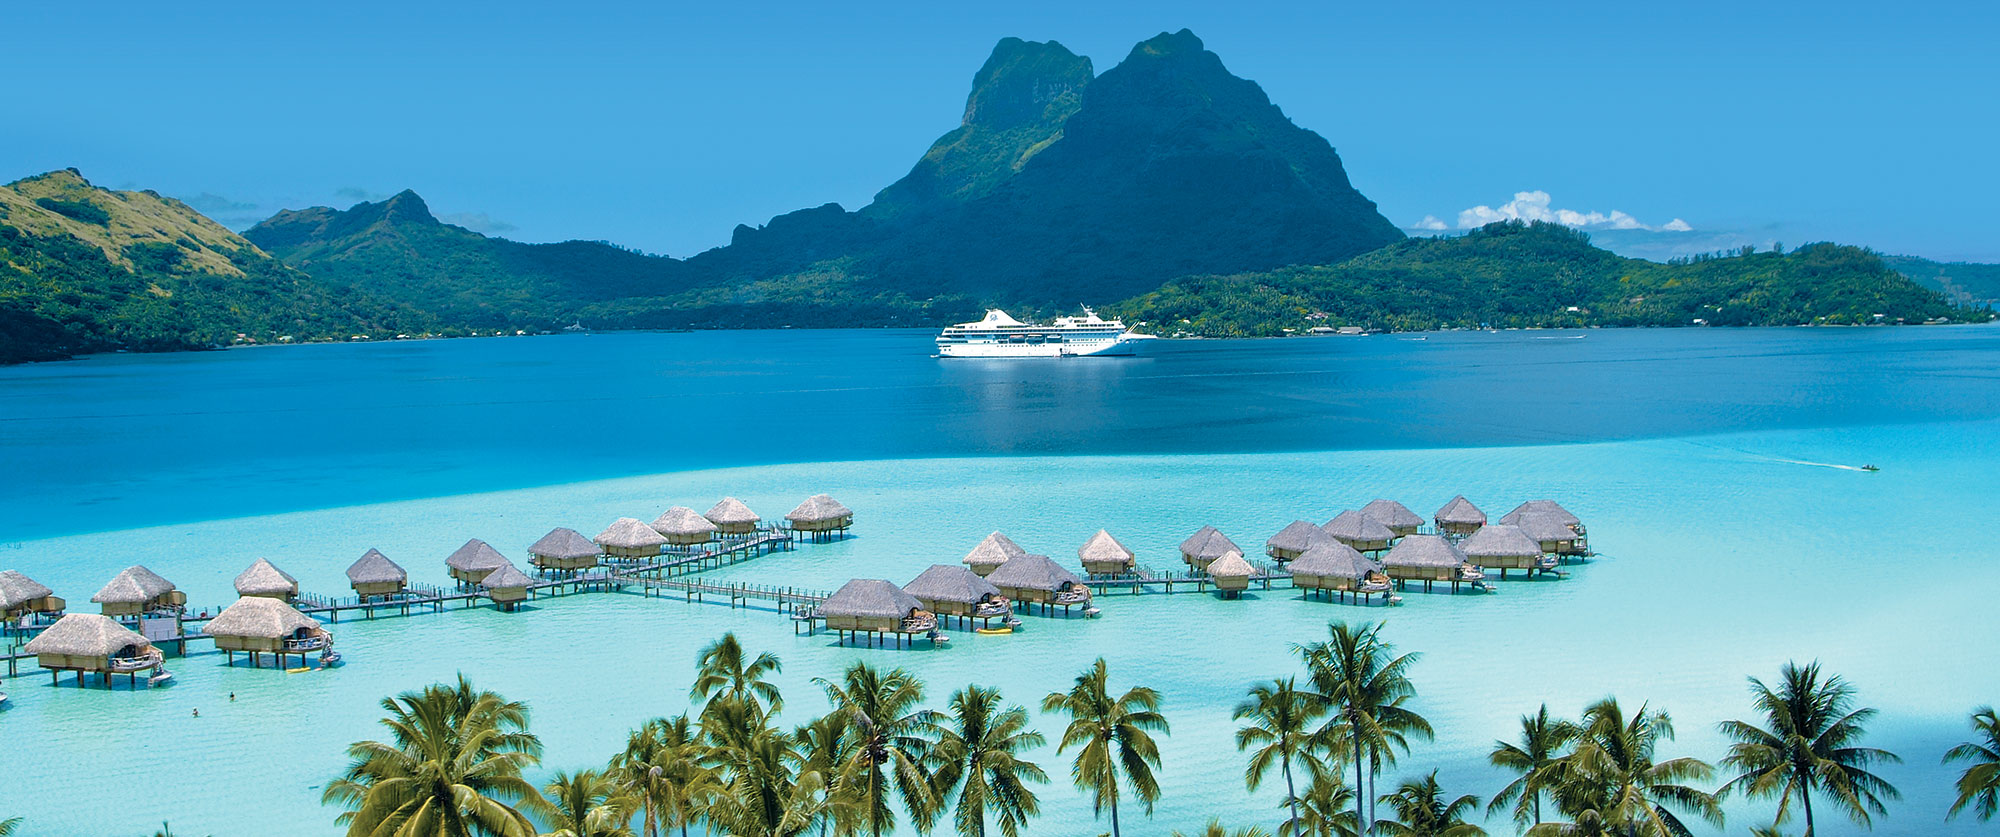 Bora Bora Cruise - Luxury Cruise Vacation of Bora Bora and Tahiti